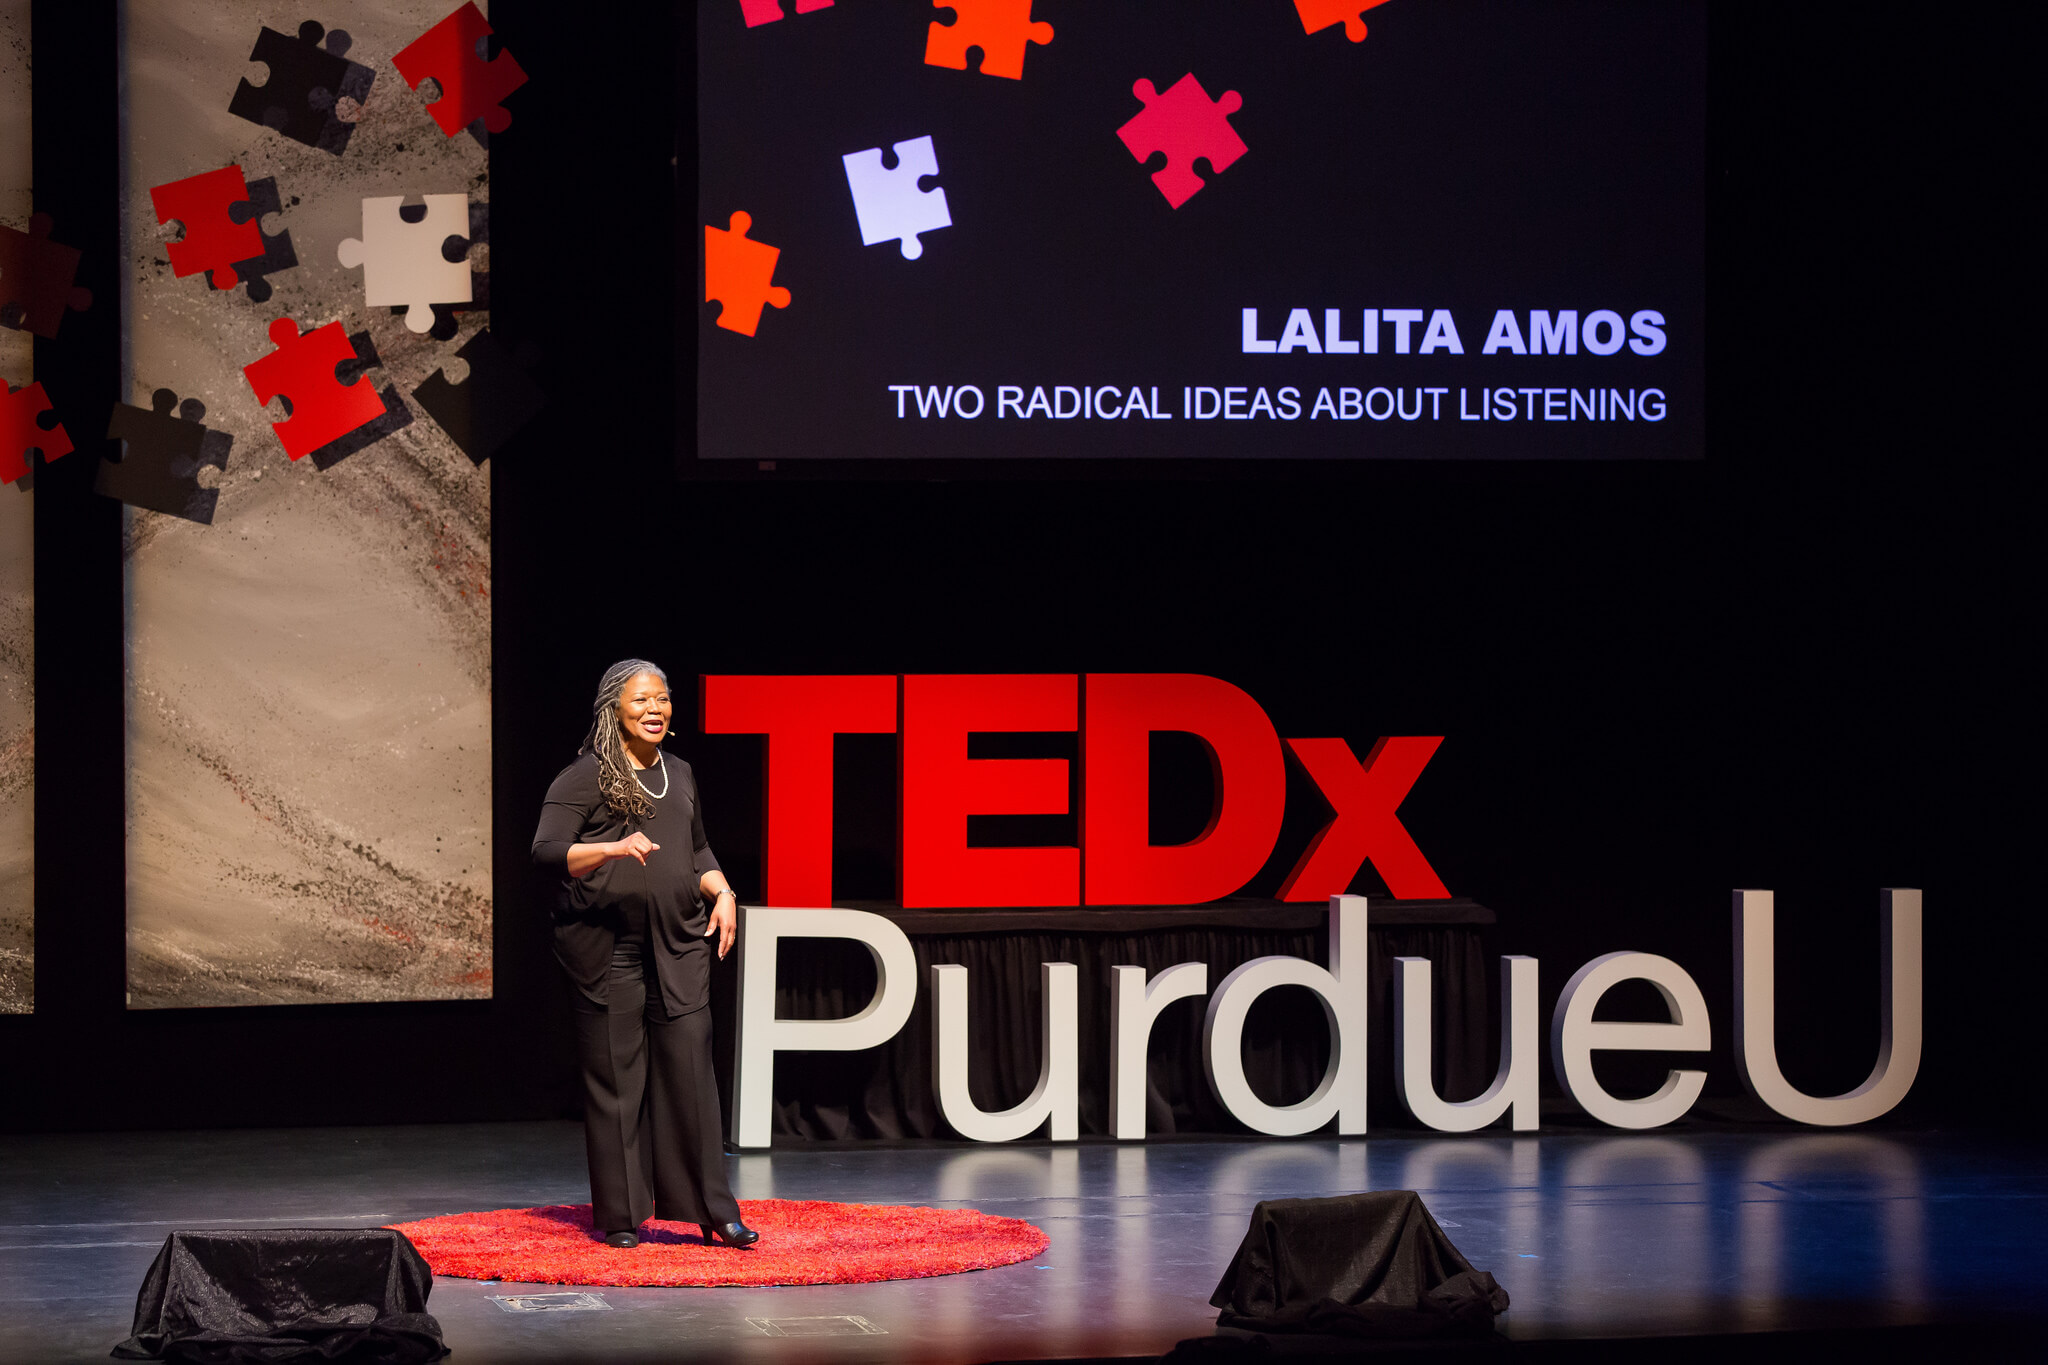 Lalita Amos gives a talk about listening